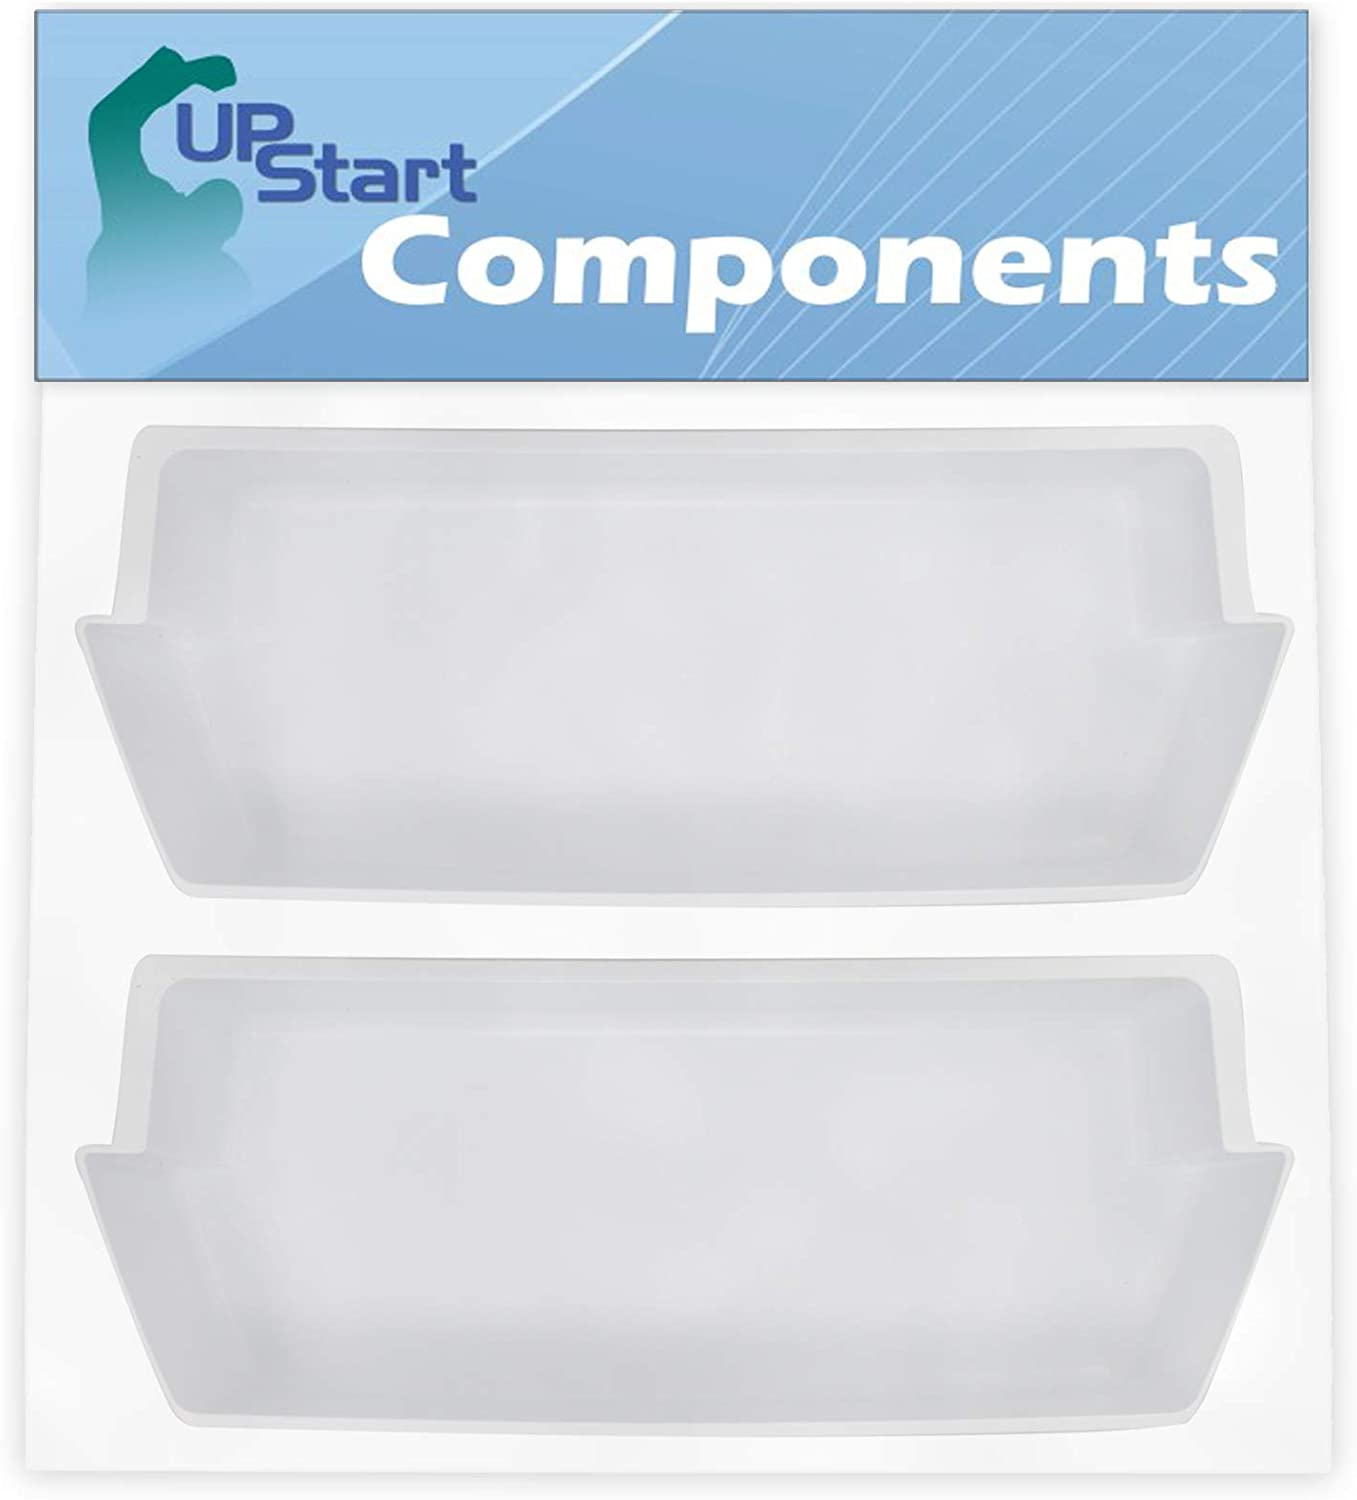 2-Pack 2187172 Refrigerator Door Bin Replacement for Amana ASD2522WRW03 Refrigerator - Compatible with WP2187172 Deep Shelf - UpStart Components Brand